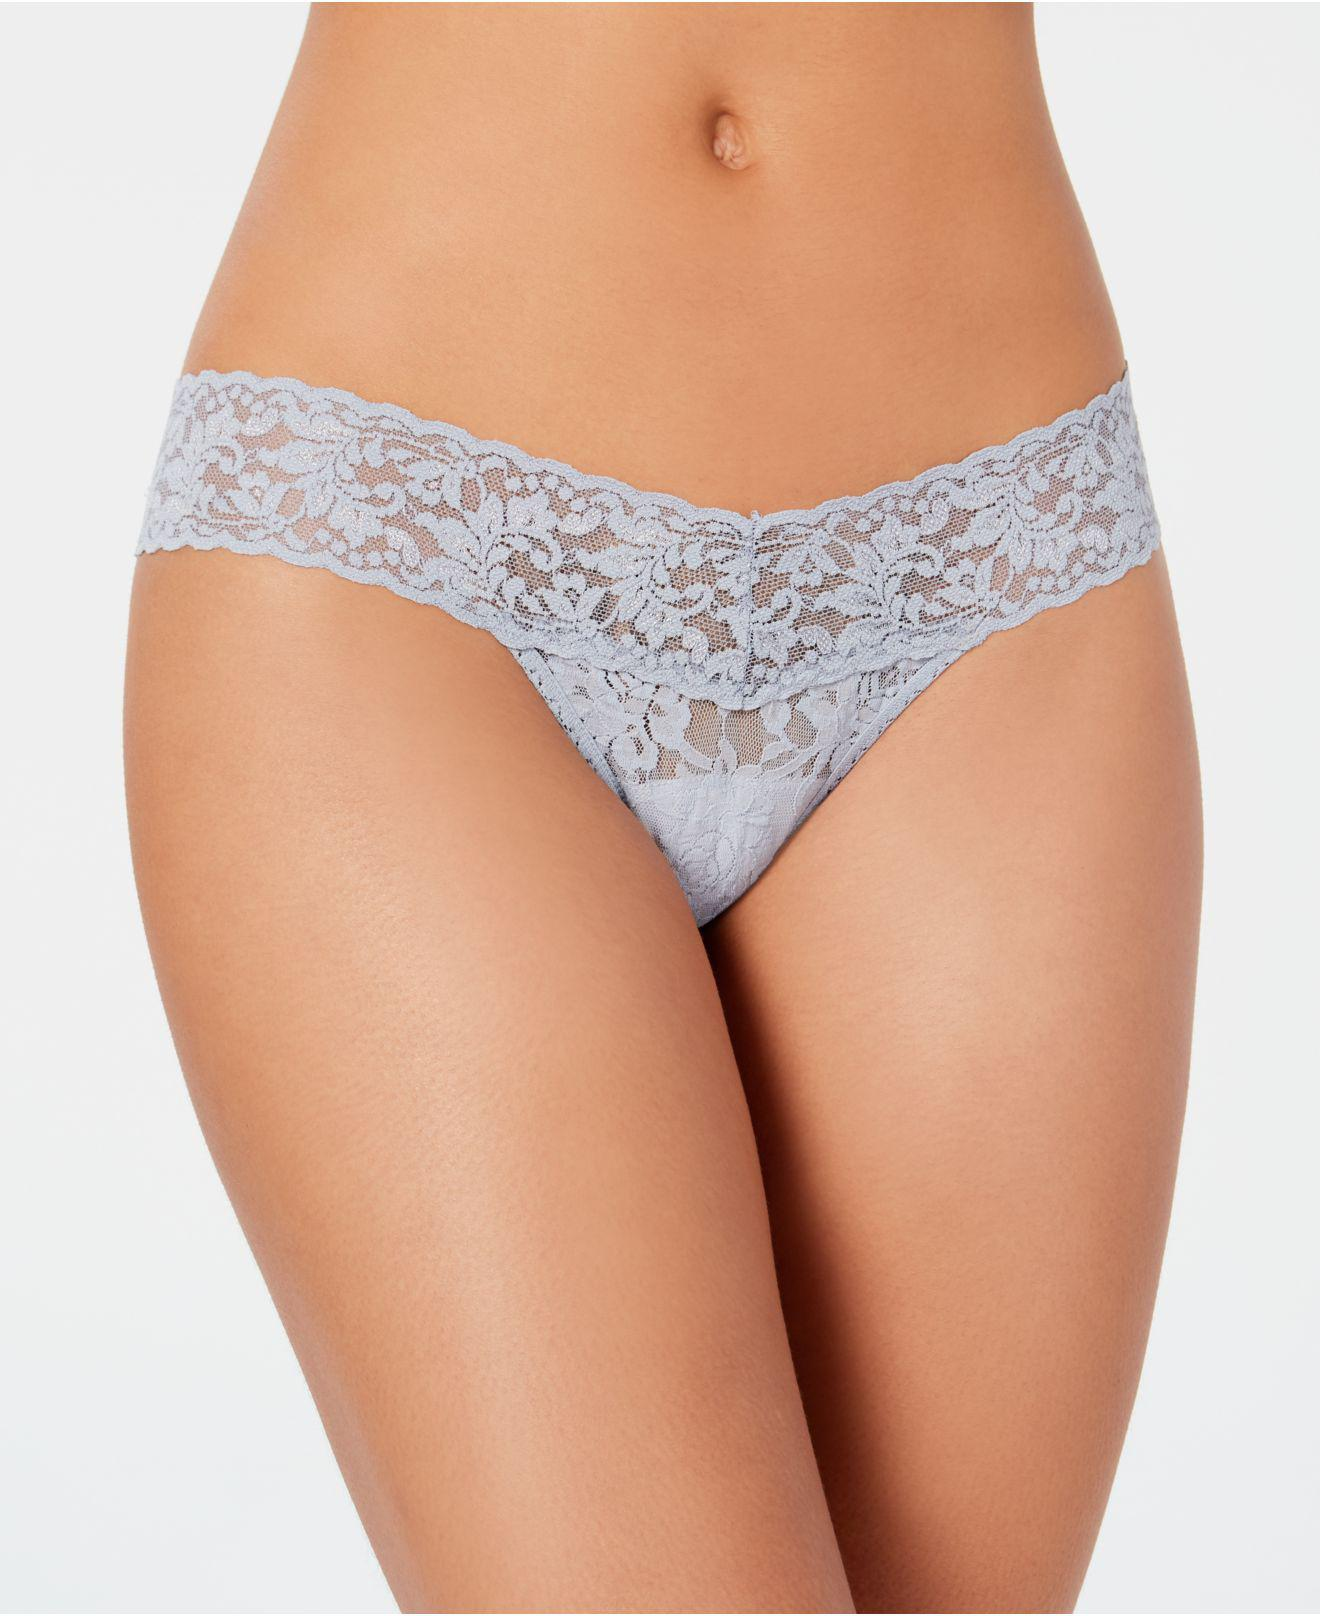 5910781c8b2 Lyst - Hanky Panky Signature Lace Low Rise Thong 4911 in Blue